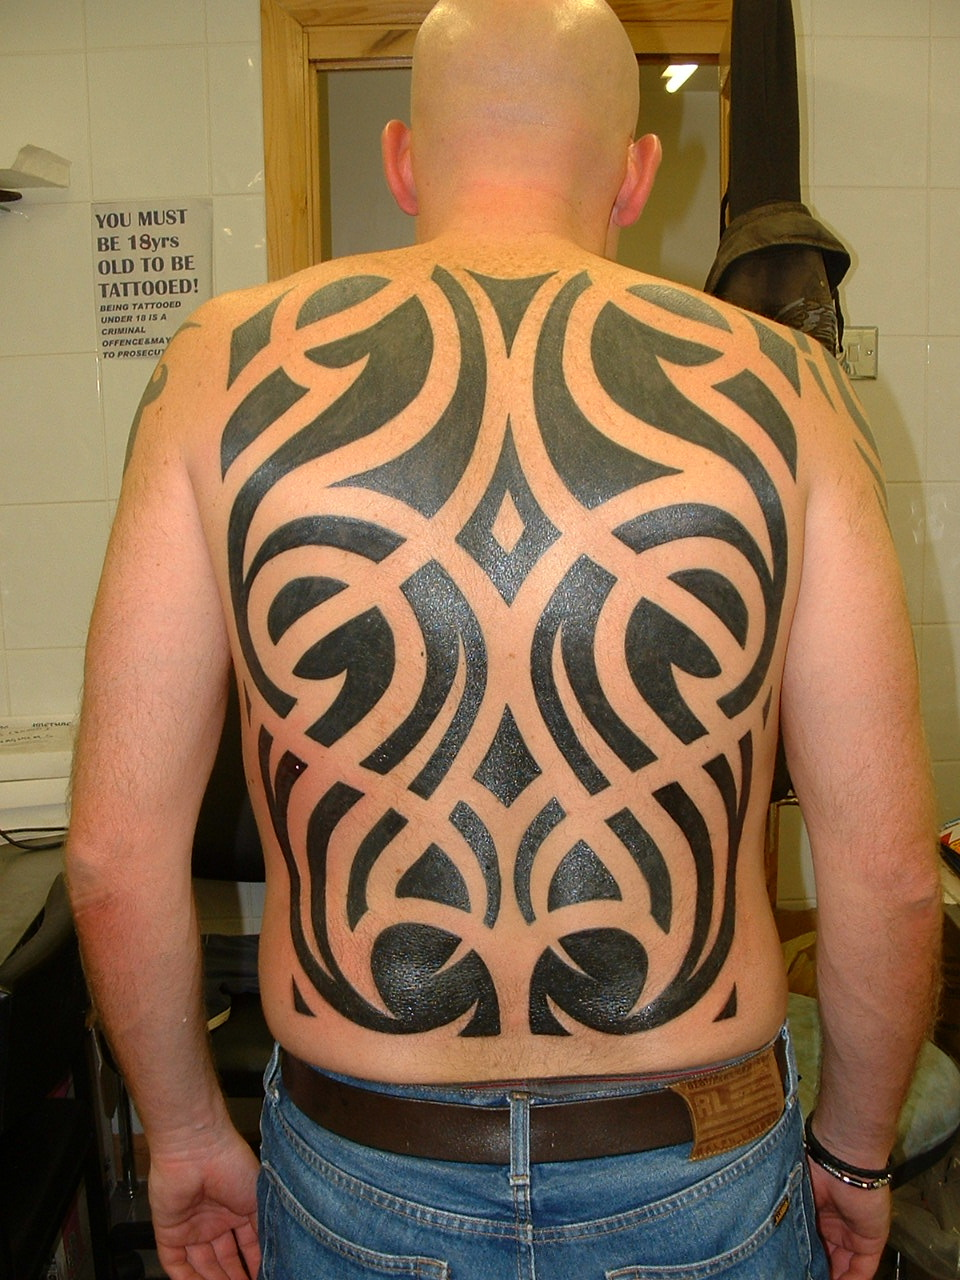 Tattoo Ideas On Back: 100 Best Tattoo Designs For Men In 2015